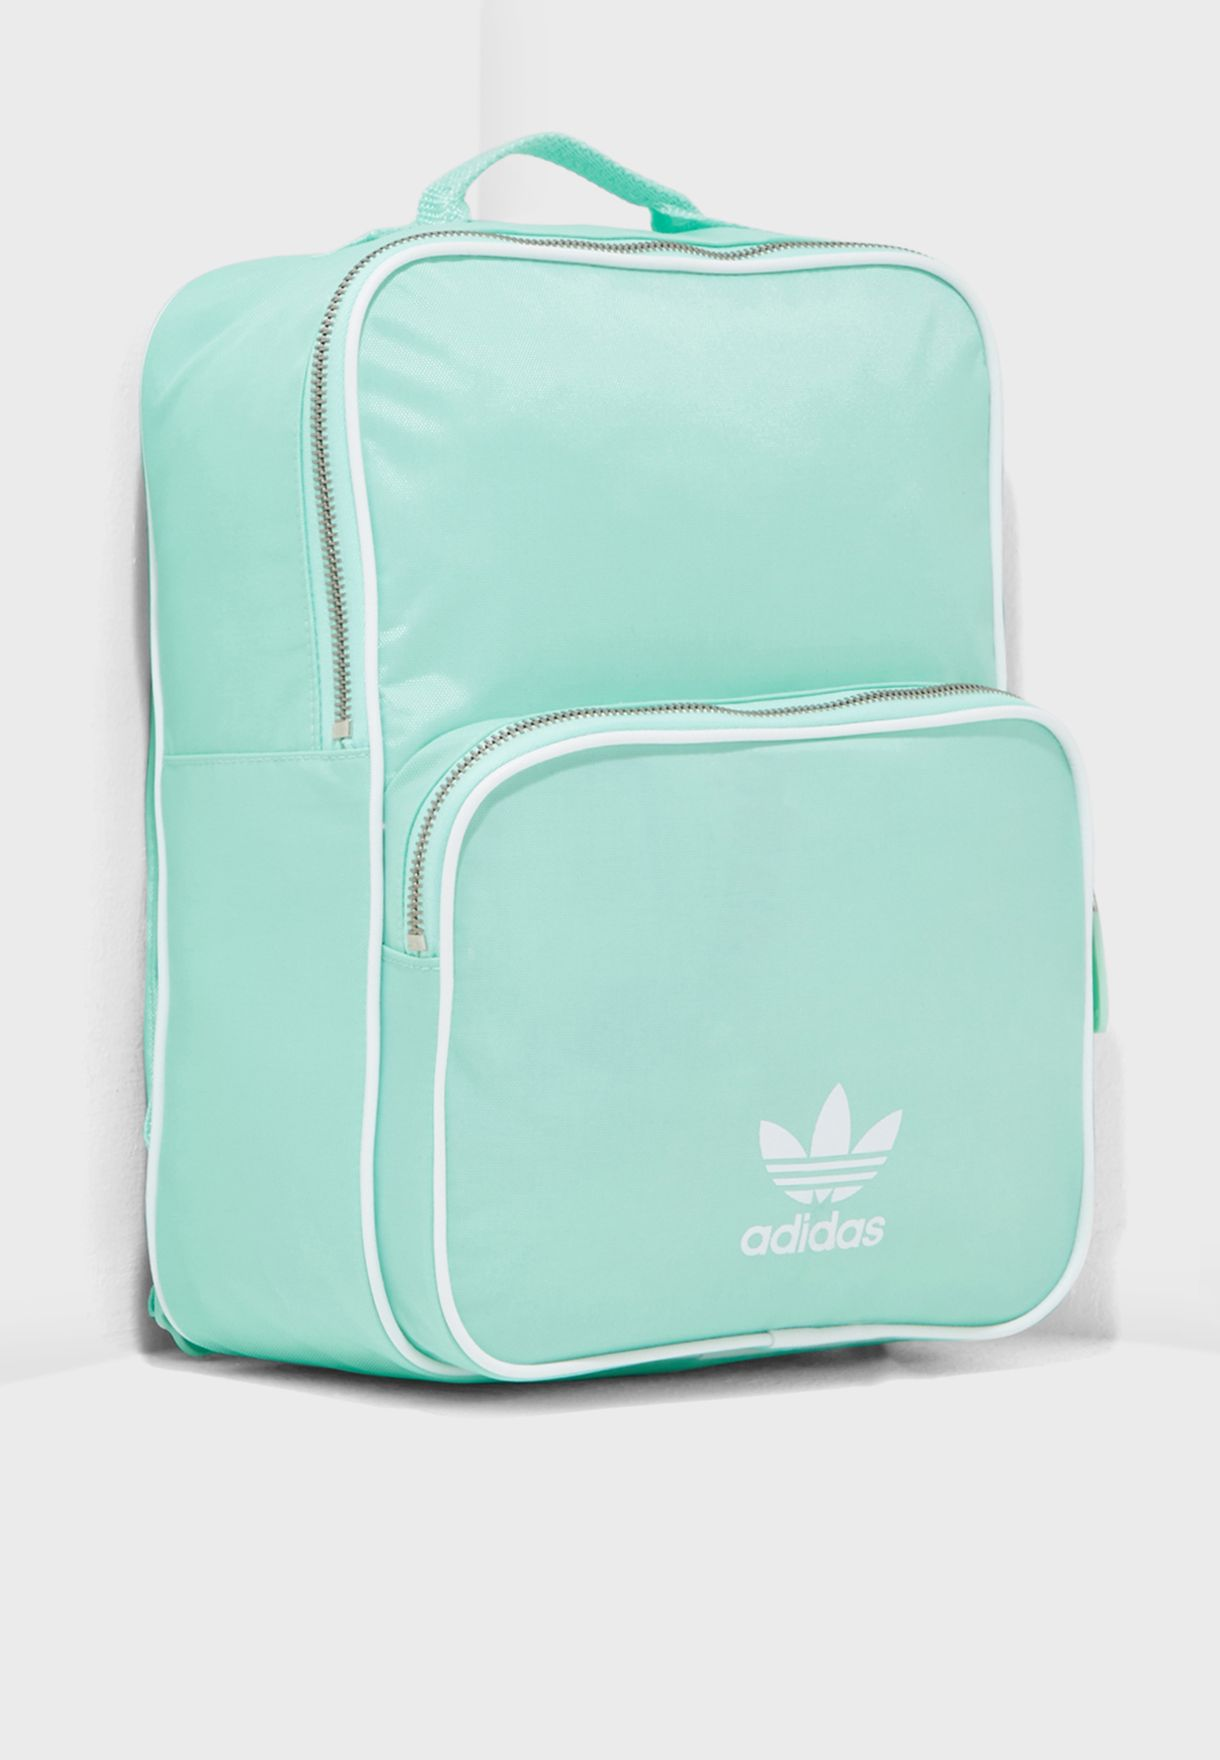 13b93dd740a6 Shop adidas Originals green adicolor Classic Backpack DH4313 for Women in  Saudi - AD478AC77VZE